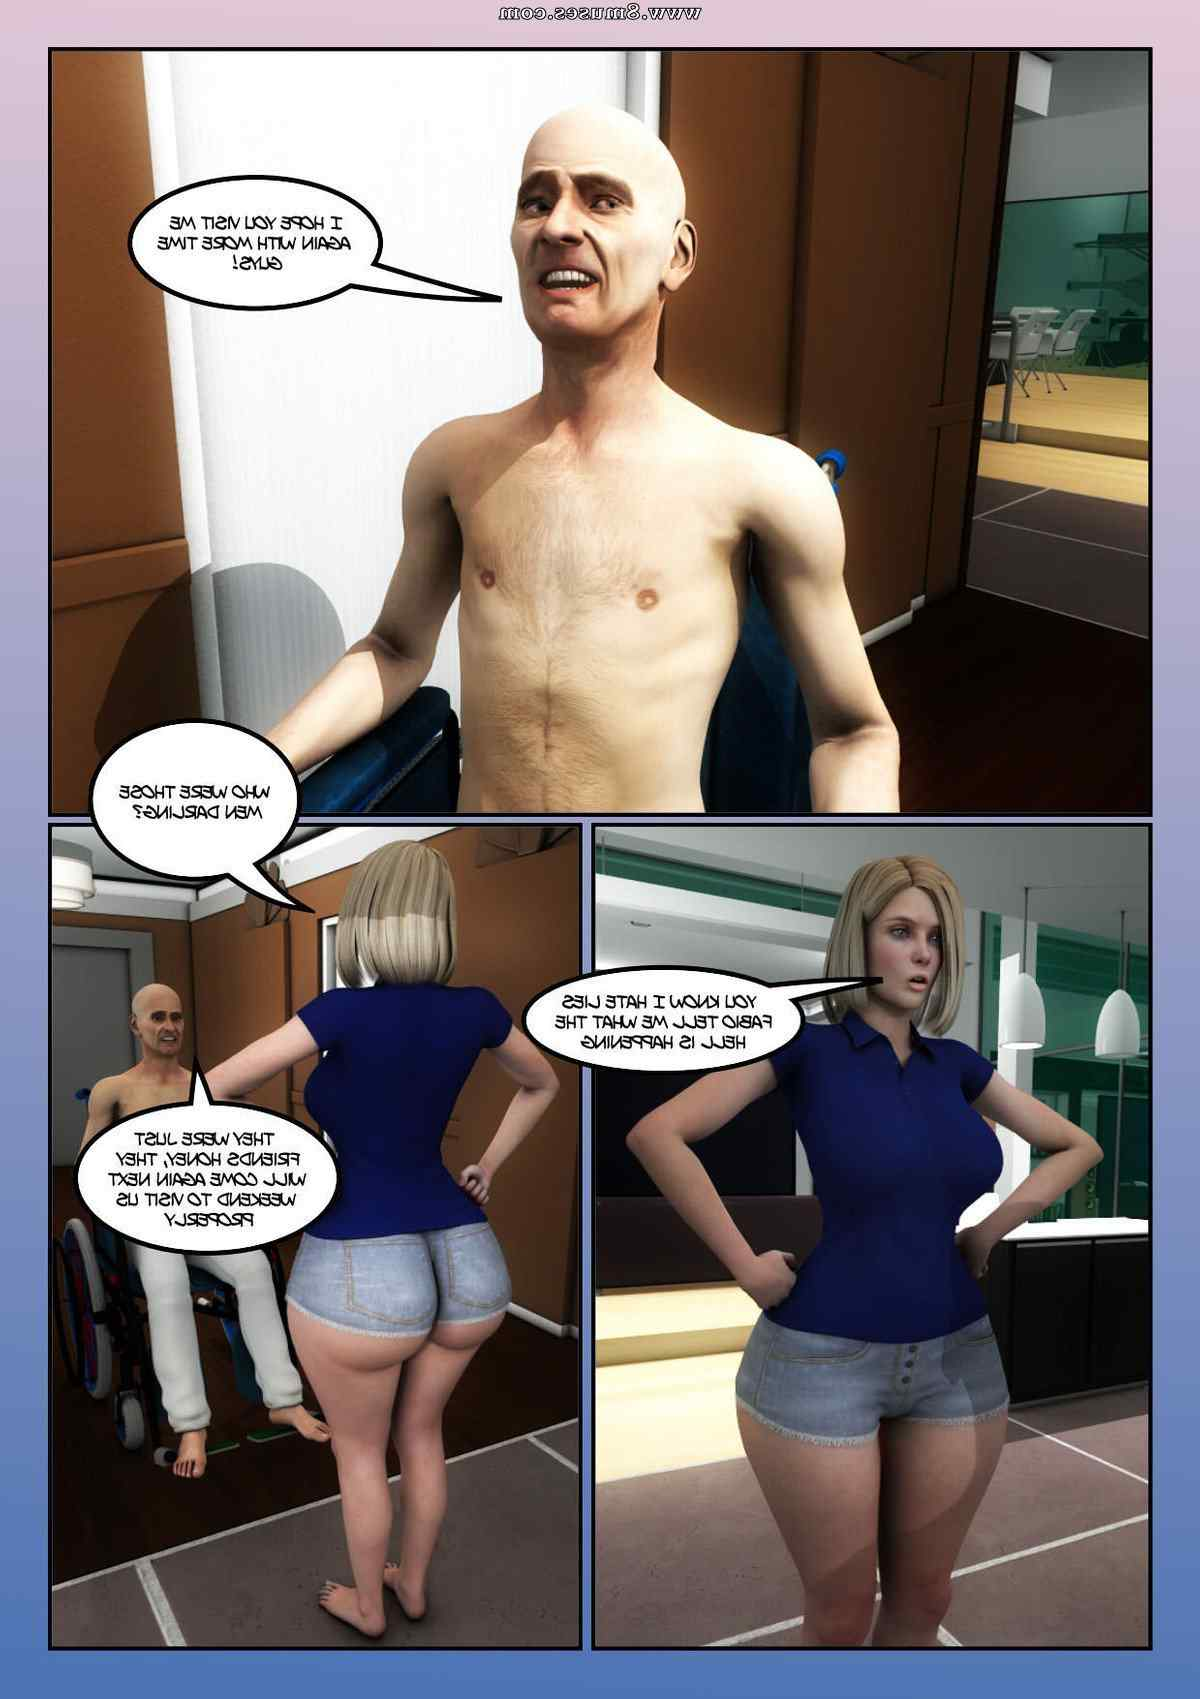 Moiarte-Comics/Past-Mistakes Past_Mistakes__8muses_-_Sex_and_Porn_Comics_12.jpg